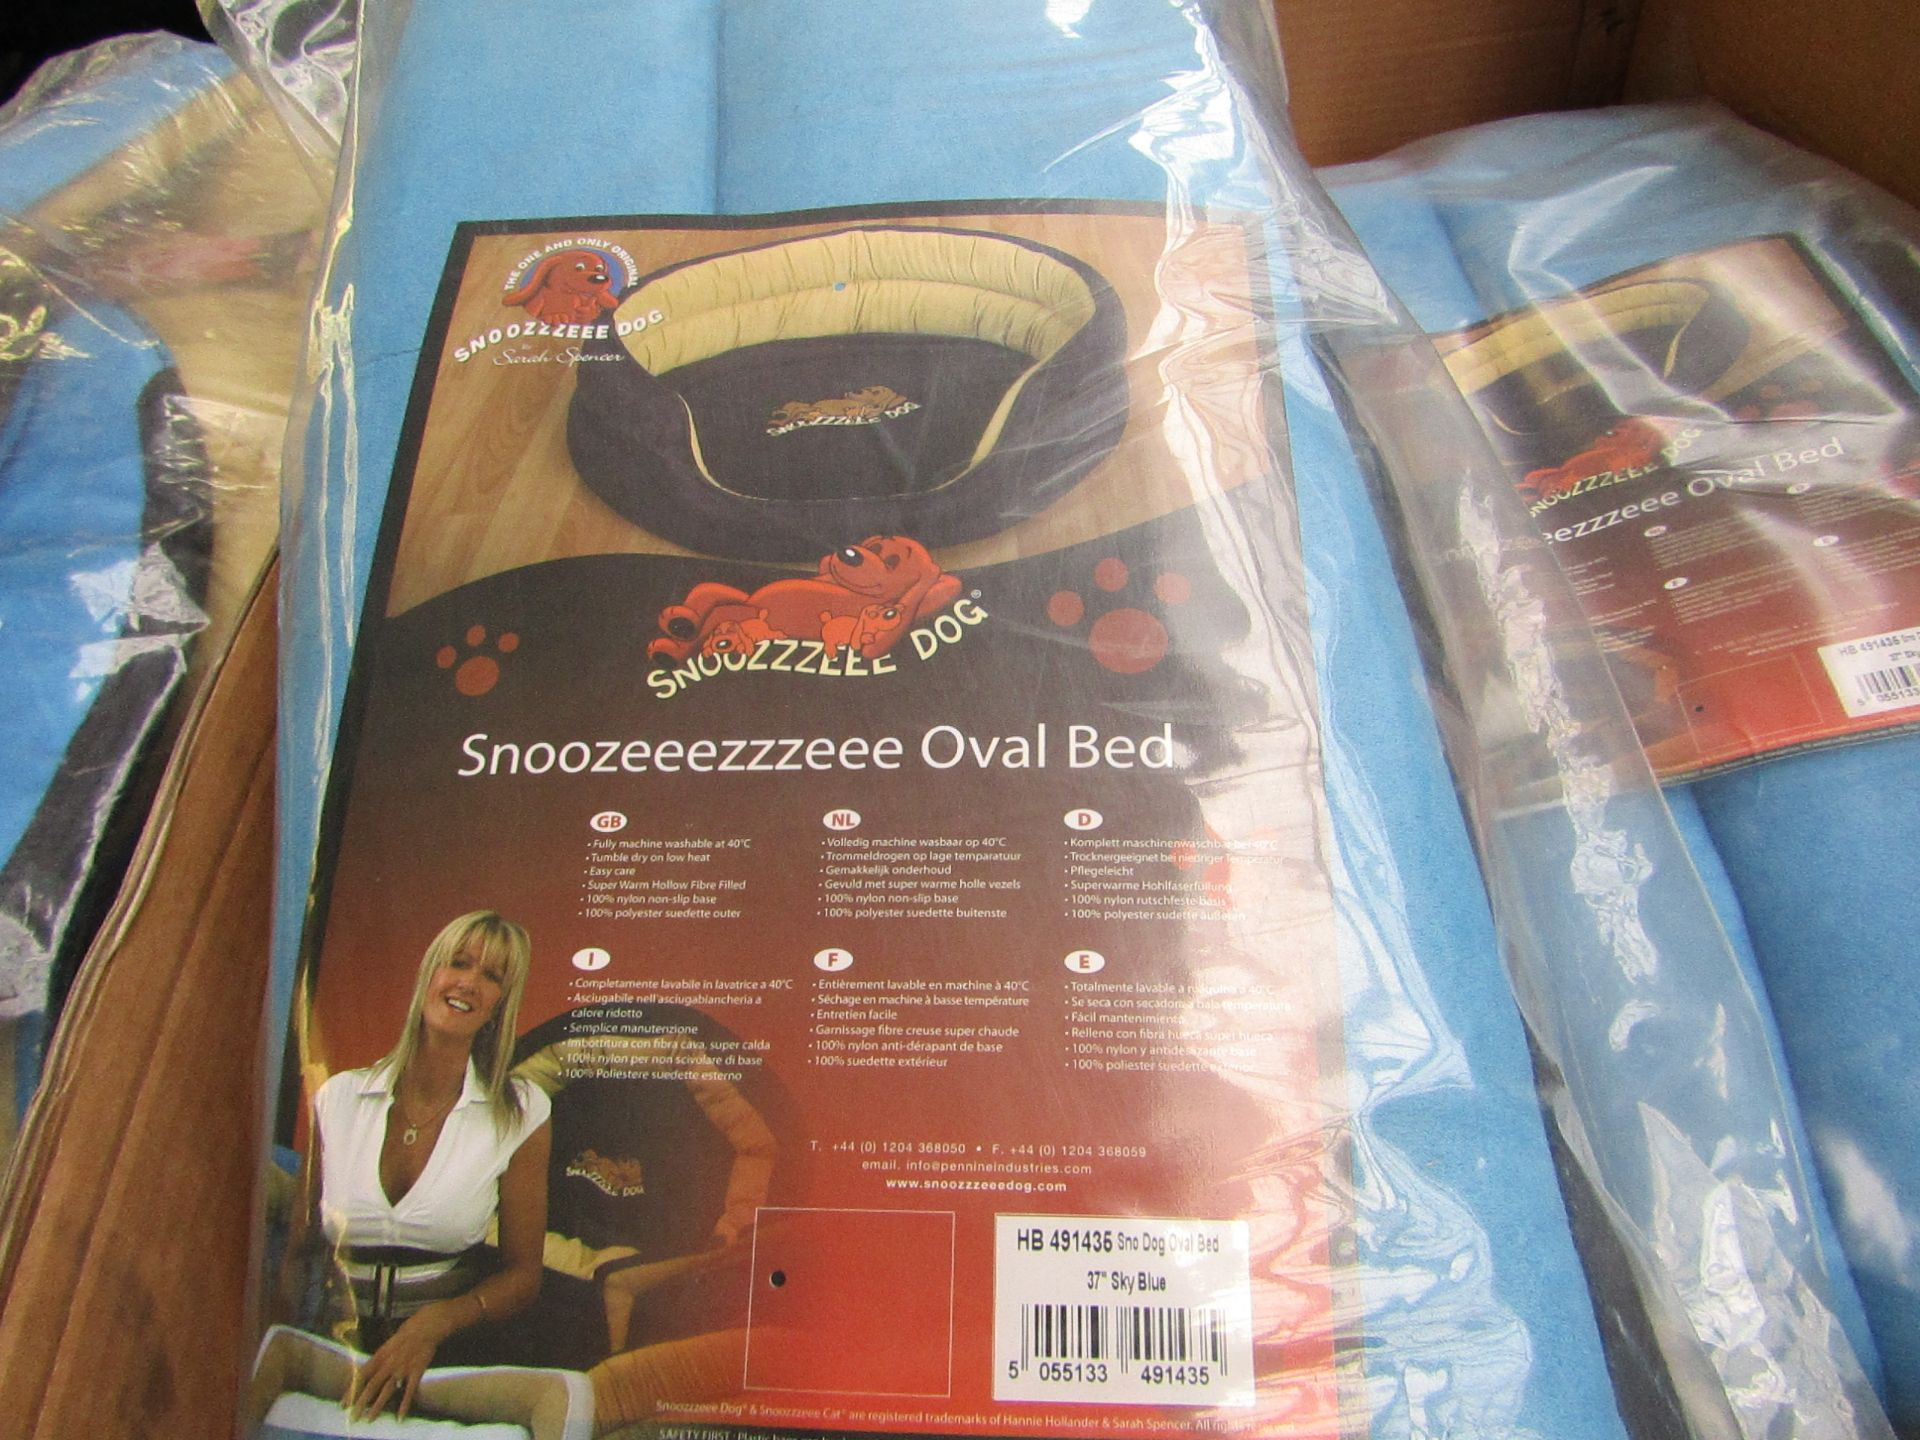 "5x Snoozzzeee Dog - Oval Sky Blue Dog Bed (37"") - All New & Packaged."